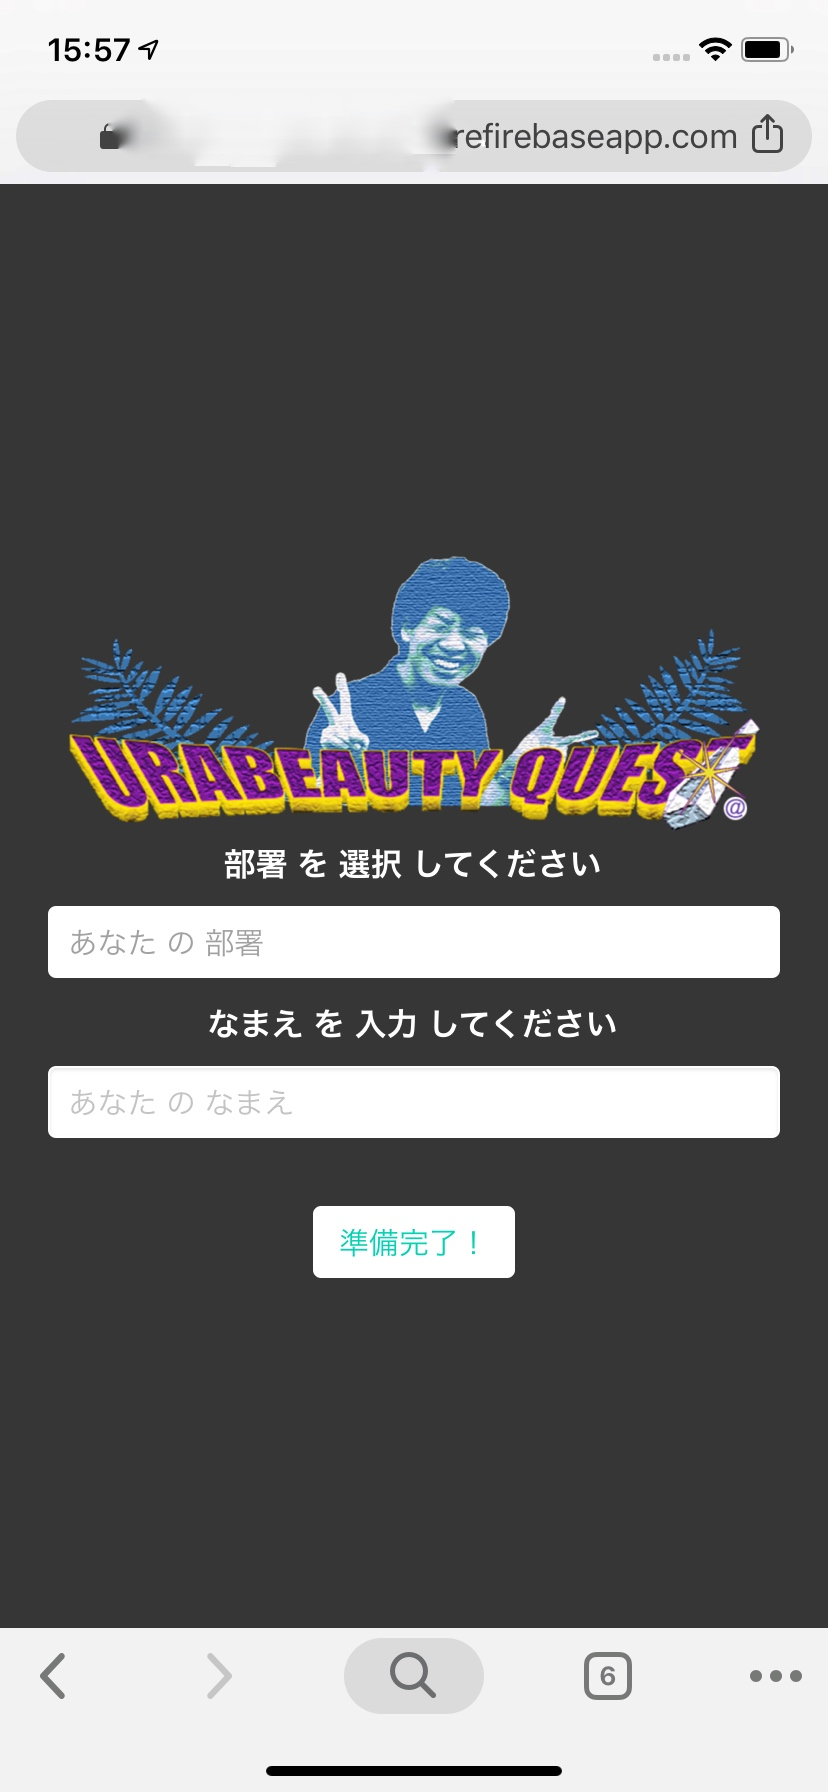 URABEAUTY QUESTアプリ画面